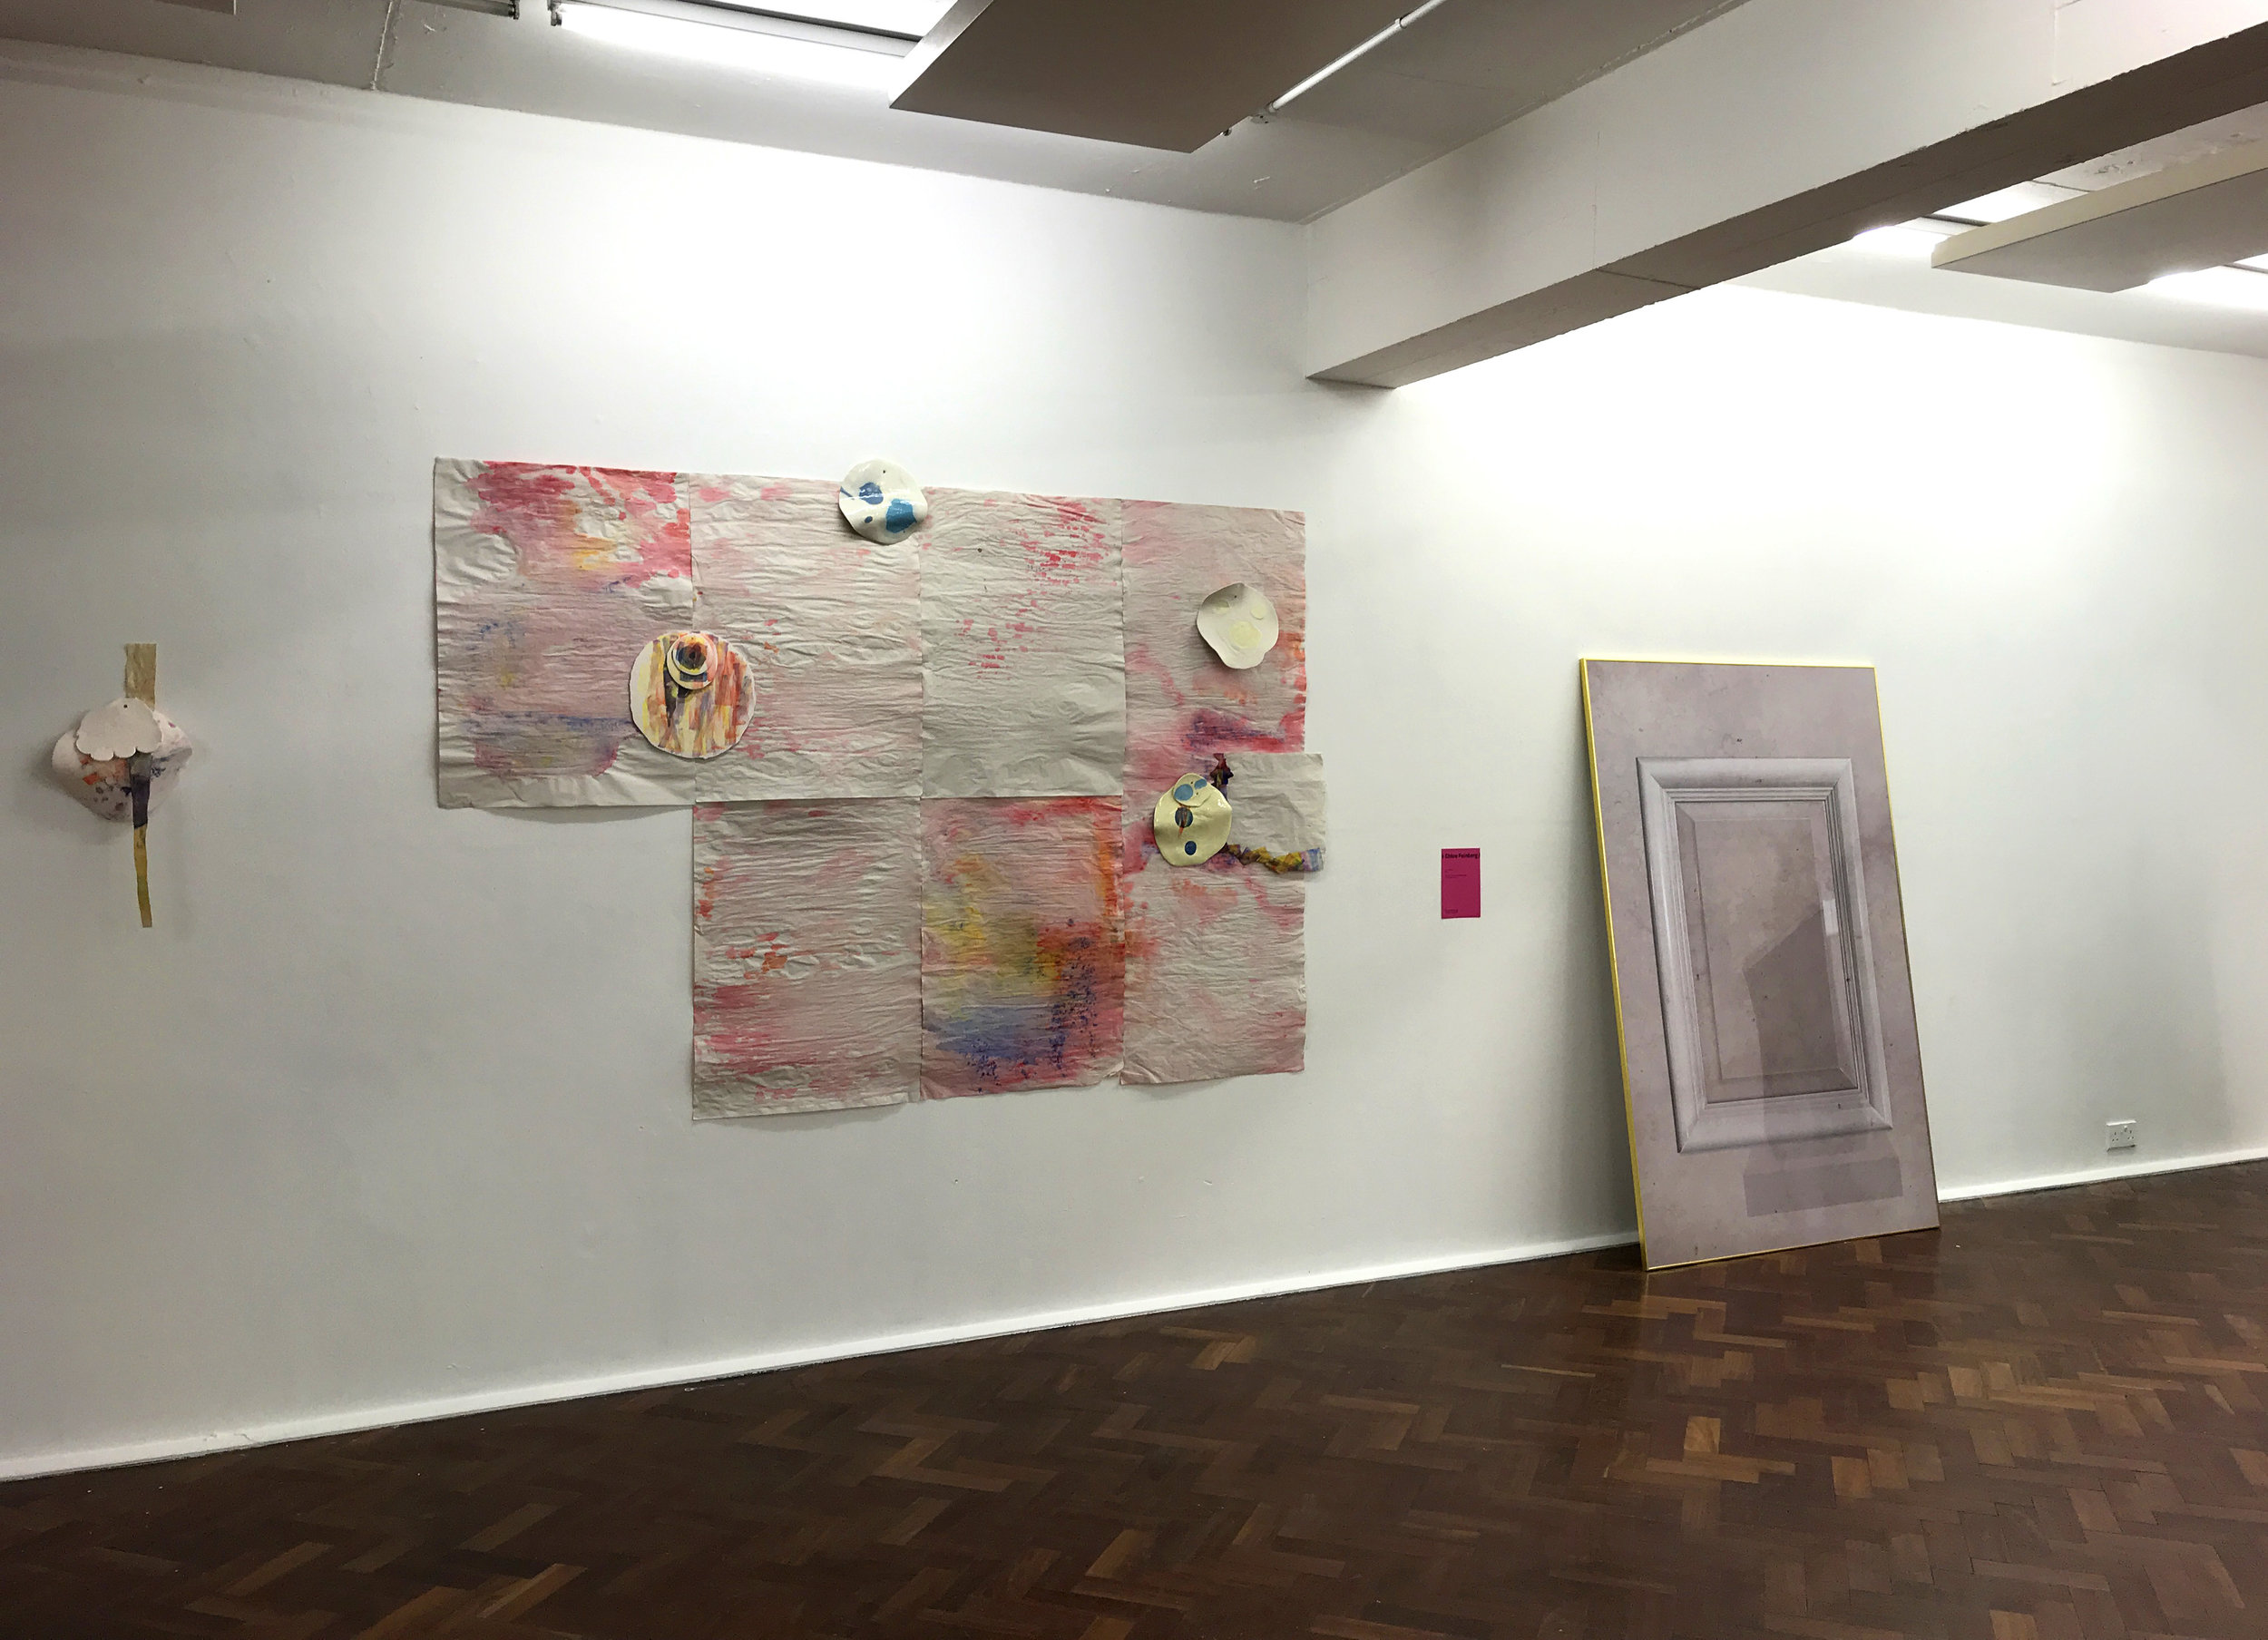 Installation for London Creative Network, SPACE, Mare St, London, March 2018, paper, watercolour, oil paint, digital transfer, glazed and unglazed porcelain